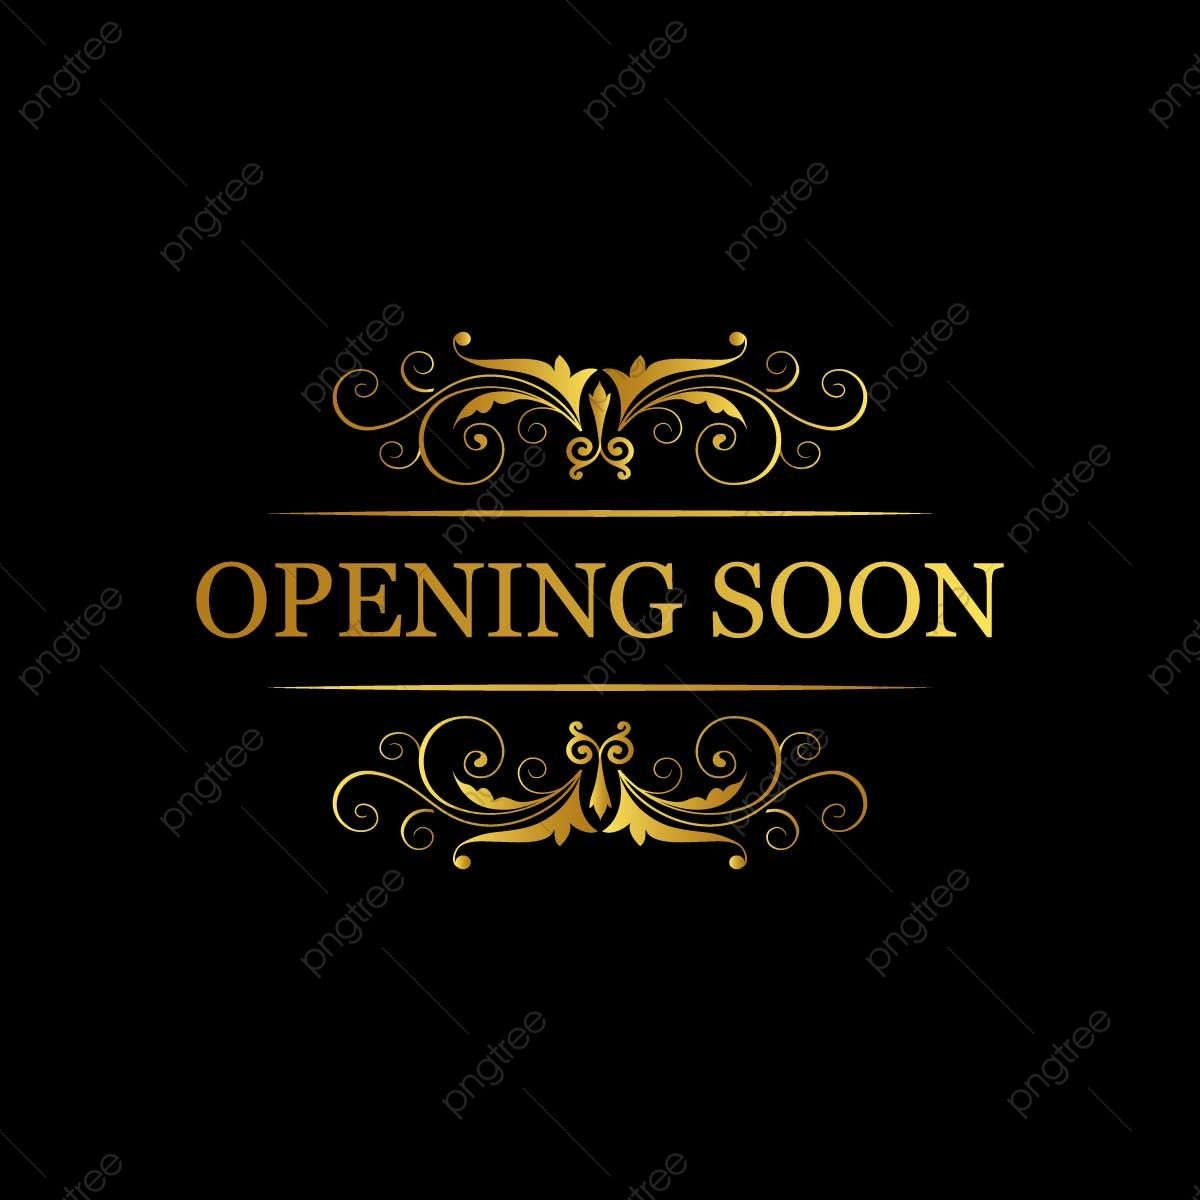 Opening Soon Banner Banner Icons Soon Opening Png And Vector With Transparent Background For Free Download Banner Vector Grand Opening Logo Design Free Templates